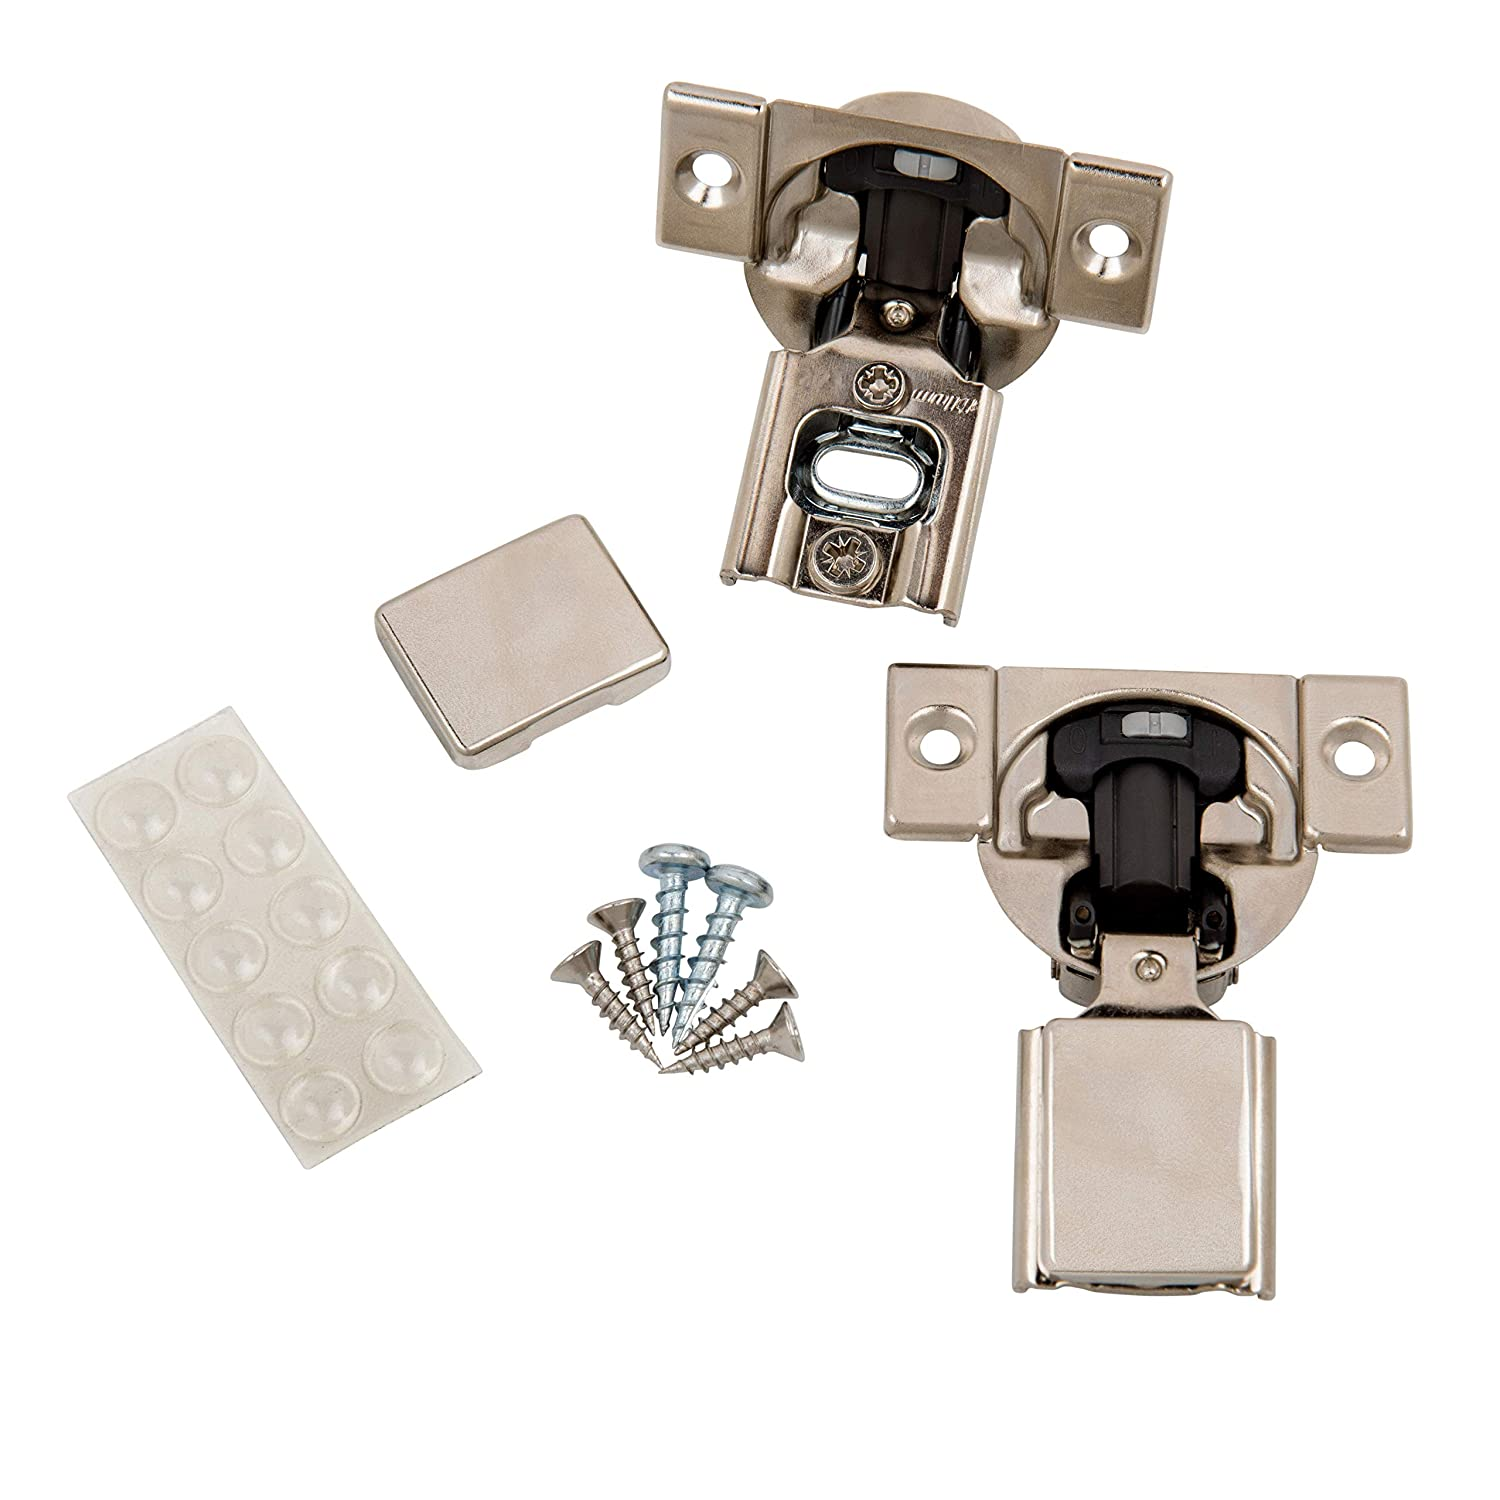 "Blum (10 Pack) 3/4"" Overlay Soft Close Hinge 38N355B.12 105° Blumotion with Screws, Cover Caps, ProCabinetBumpers Bumpers"